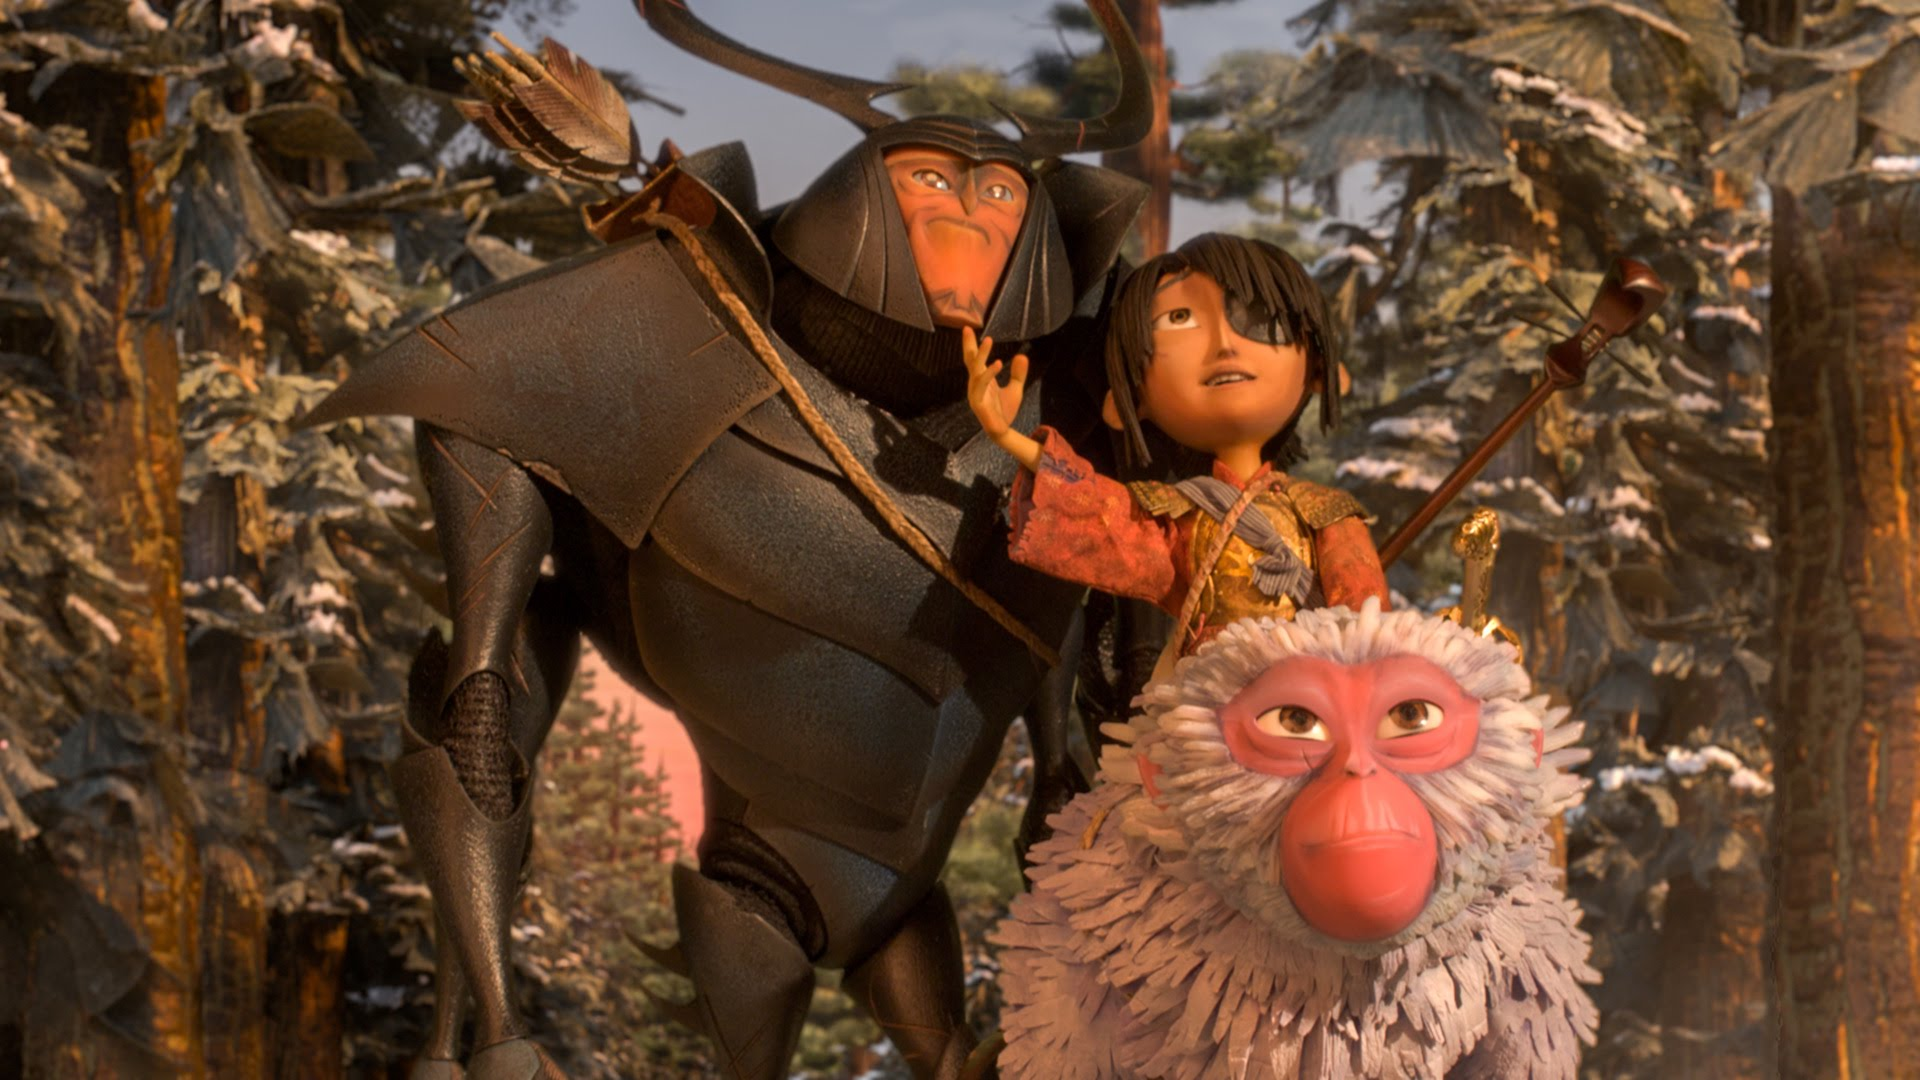 'Kubo' wins another animated film award, but still sits behind 'Zootopia'